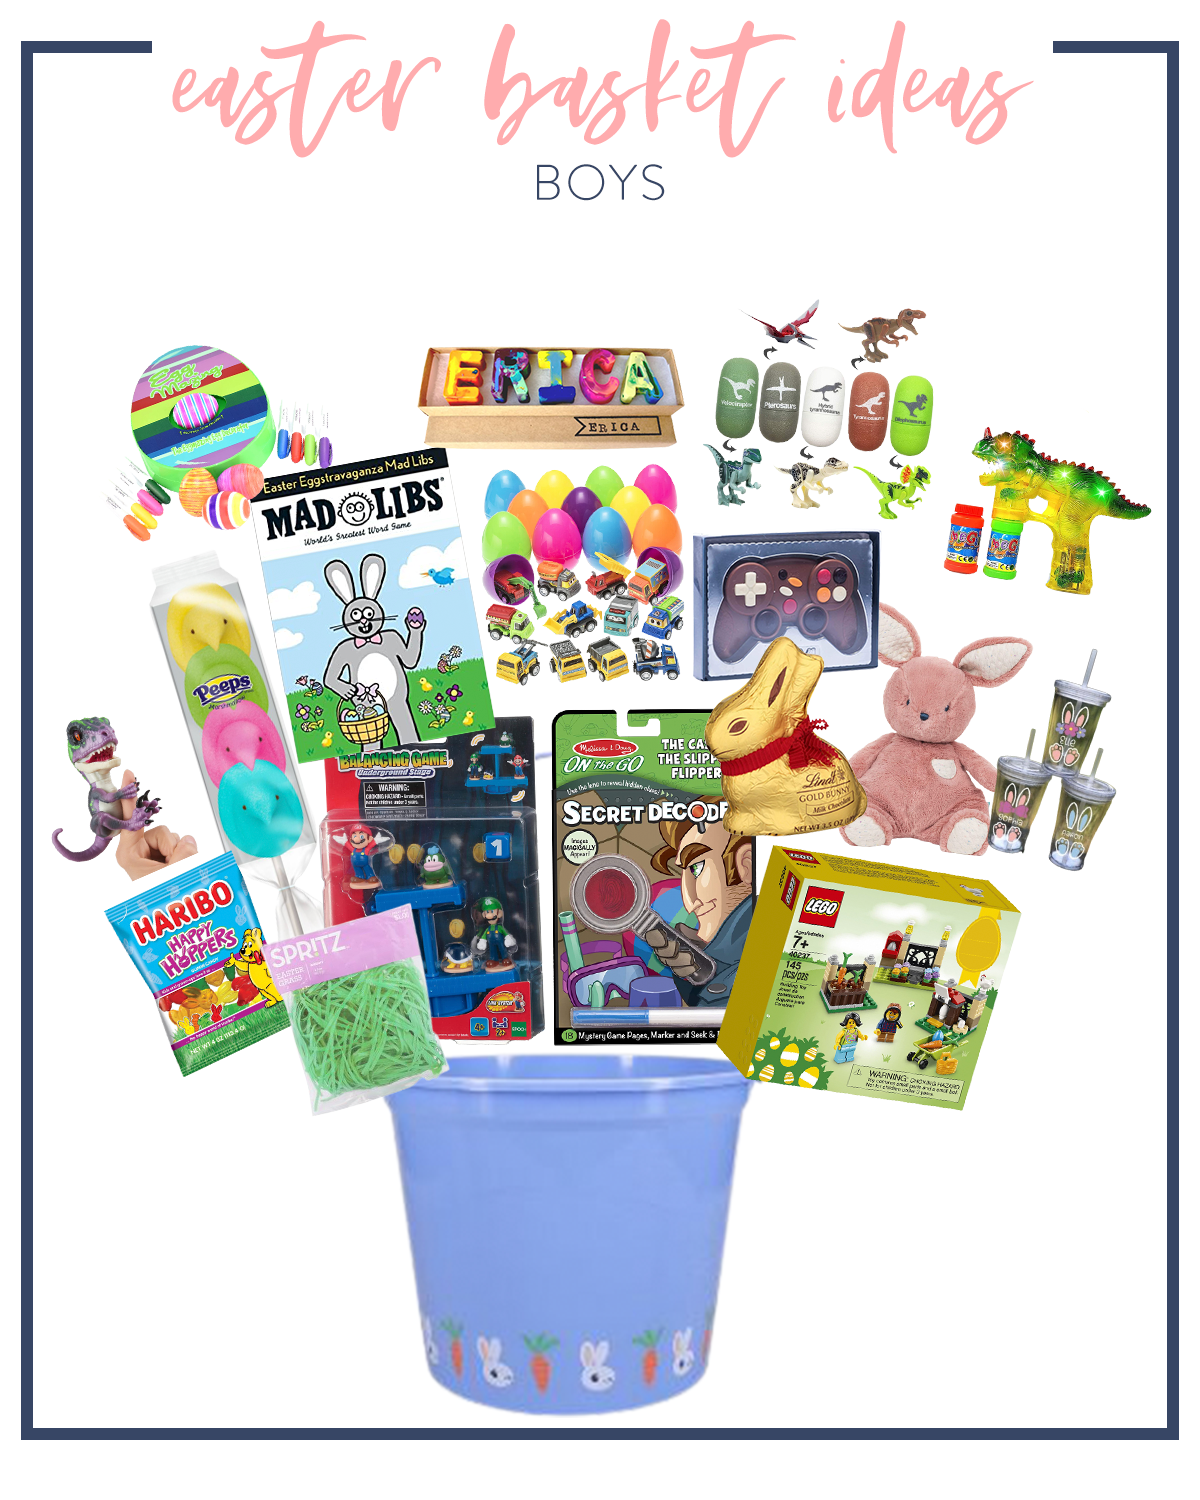 Kids Easter Basket Ideas by popular Houston lifestyle blog, Fancy Ashley: collage image of a blue plastic bucket, Haribo gummy bears, peeps on a stick, dinosaur finger toy, lego set, Mad Libs, Name crayons, Dinosaur bubble blower, chocolate game controller, Melissa and Doug secret decoder, stuffed bunny toy, green basket grass, and reusable tumbler.